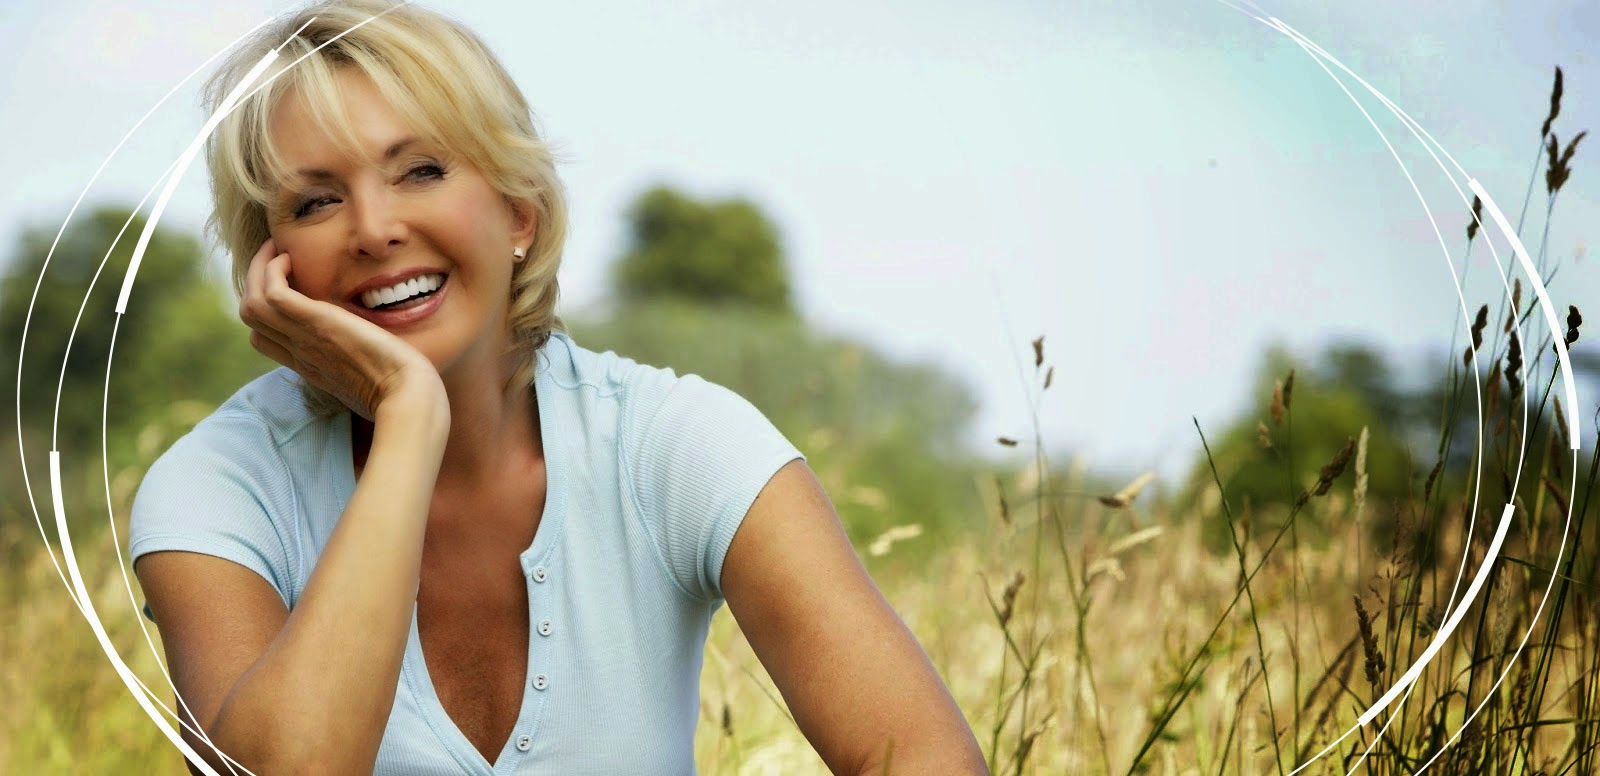 What do women need to know about asthma?